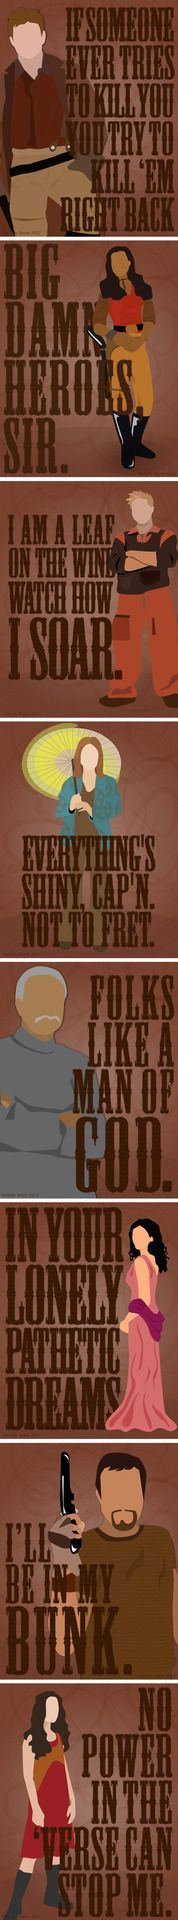 firefly fan art | Tumblr The gang's all here - except Simon. Still trying to think of a good quote for him. Please purchase something from my Society6 shop or my Redbubble shop - starving artist here and a Kaylee tote bag would be so cute! $5 off Society6 until the 11/11/12!